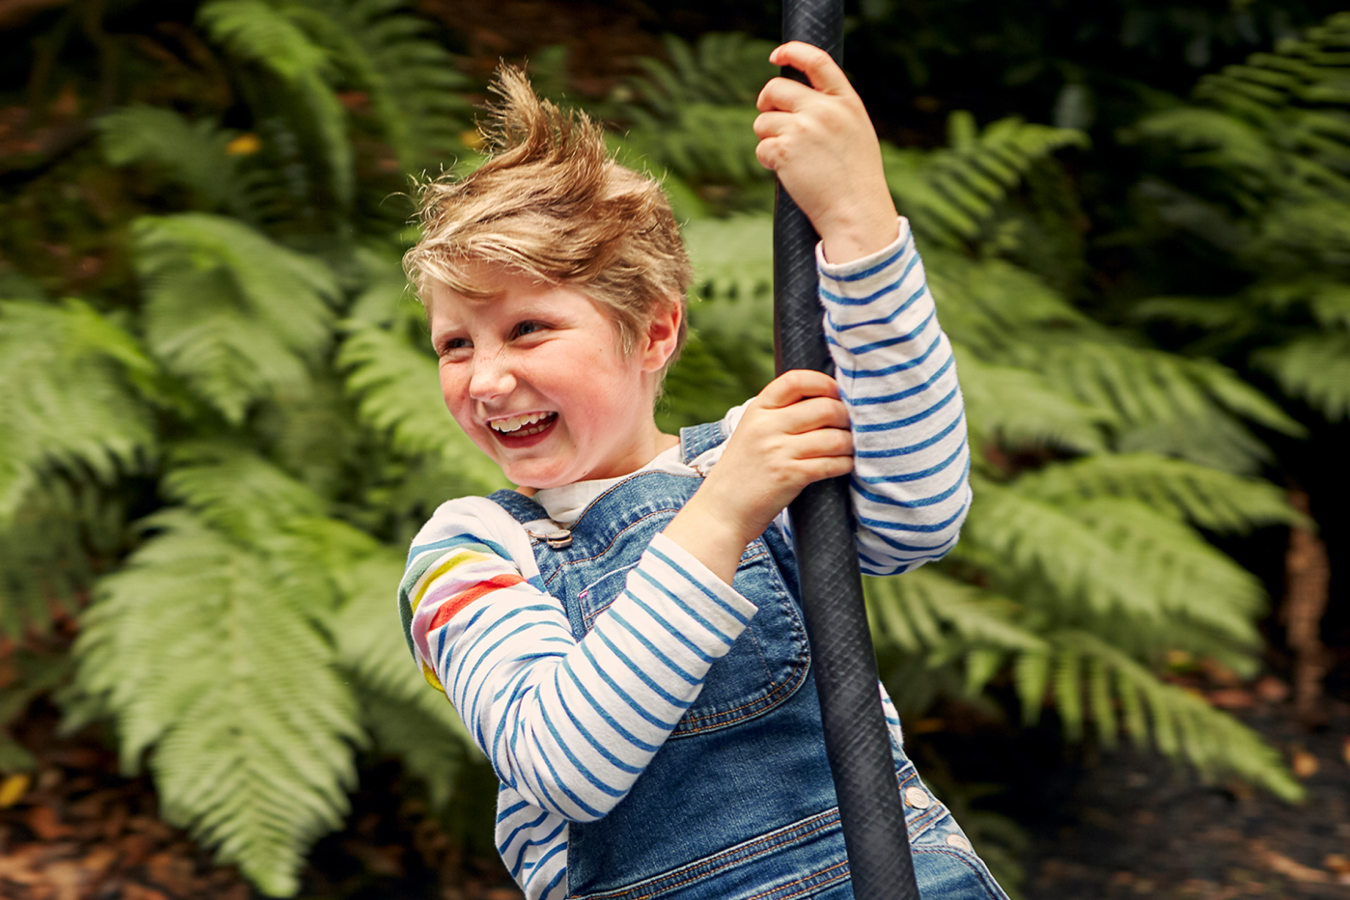 Child on a zip wire at Trebah Gardens Cornwall at 6x4 ratio